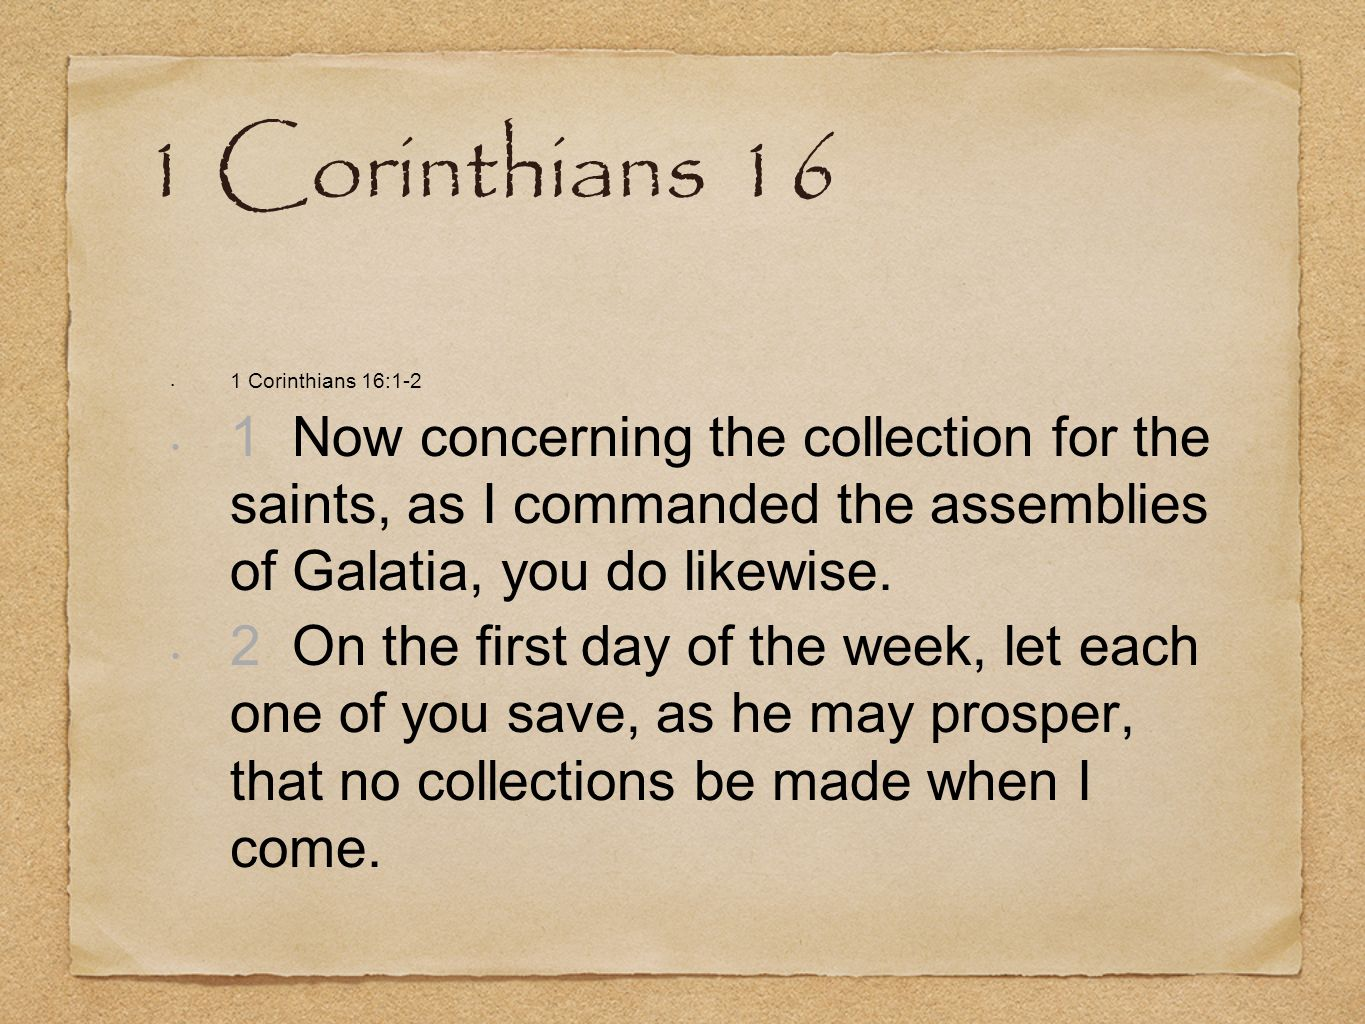 1 Corinthians 161 Corinthians 16:1-2. 1 Now concerning the collection for the saints, as I commanded the assemblies of Galatia, you do likewise.